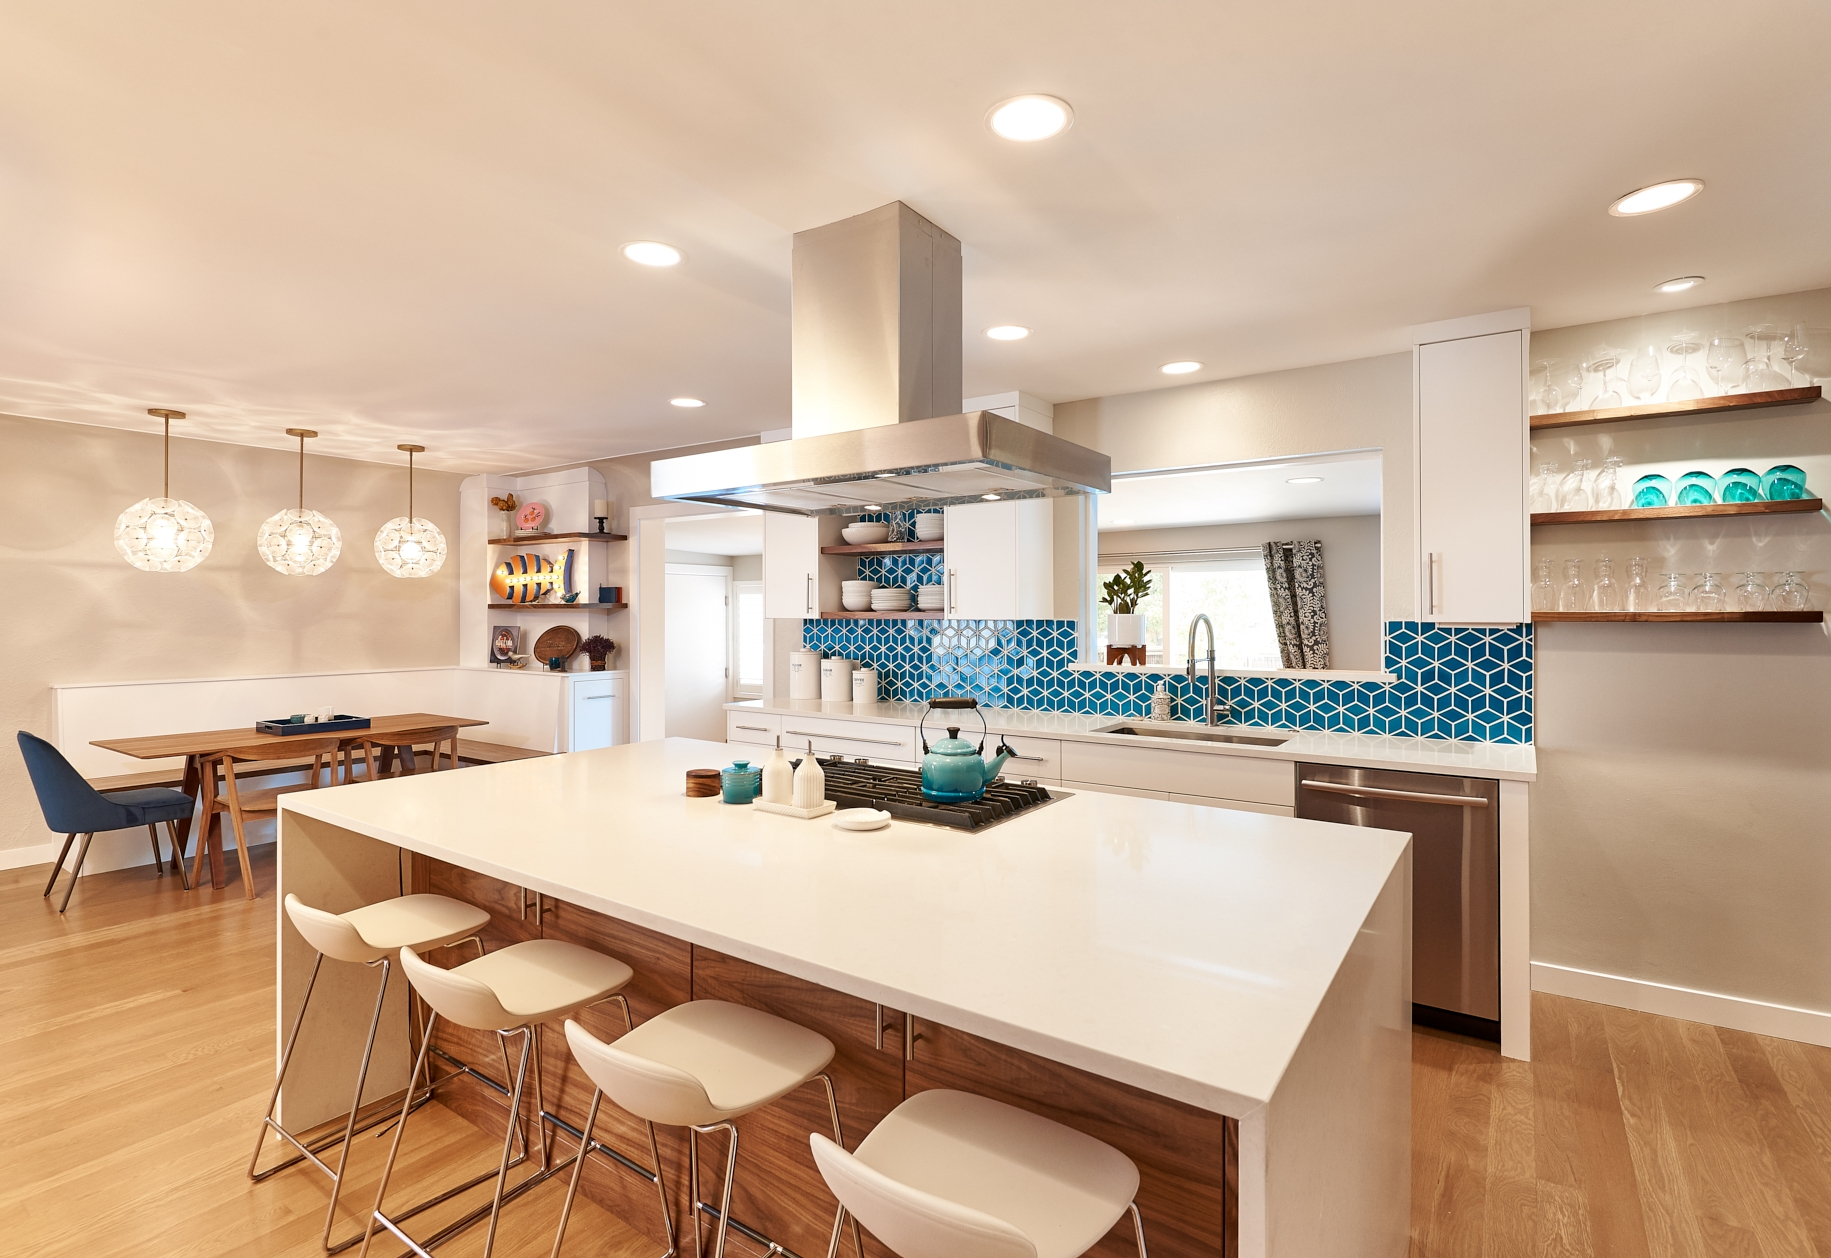 Open kitchen with white quartz counter and modern bar stools and built in. stove in island and 328 interior design group - chance lanphear photography